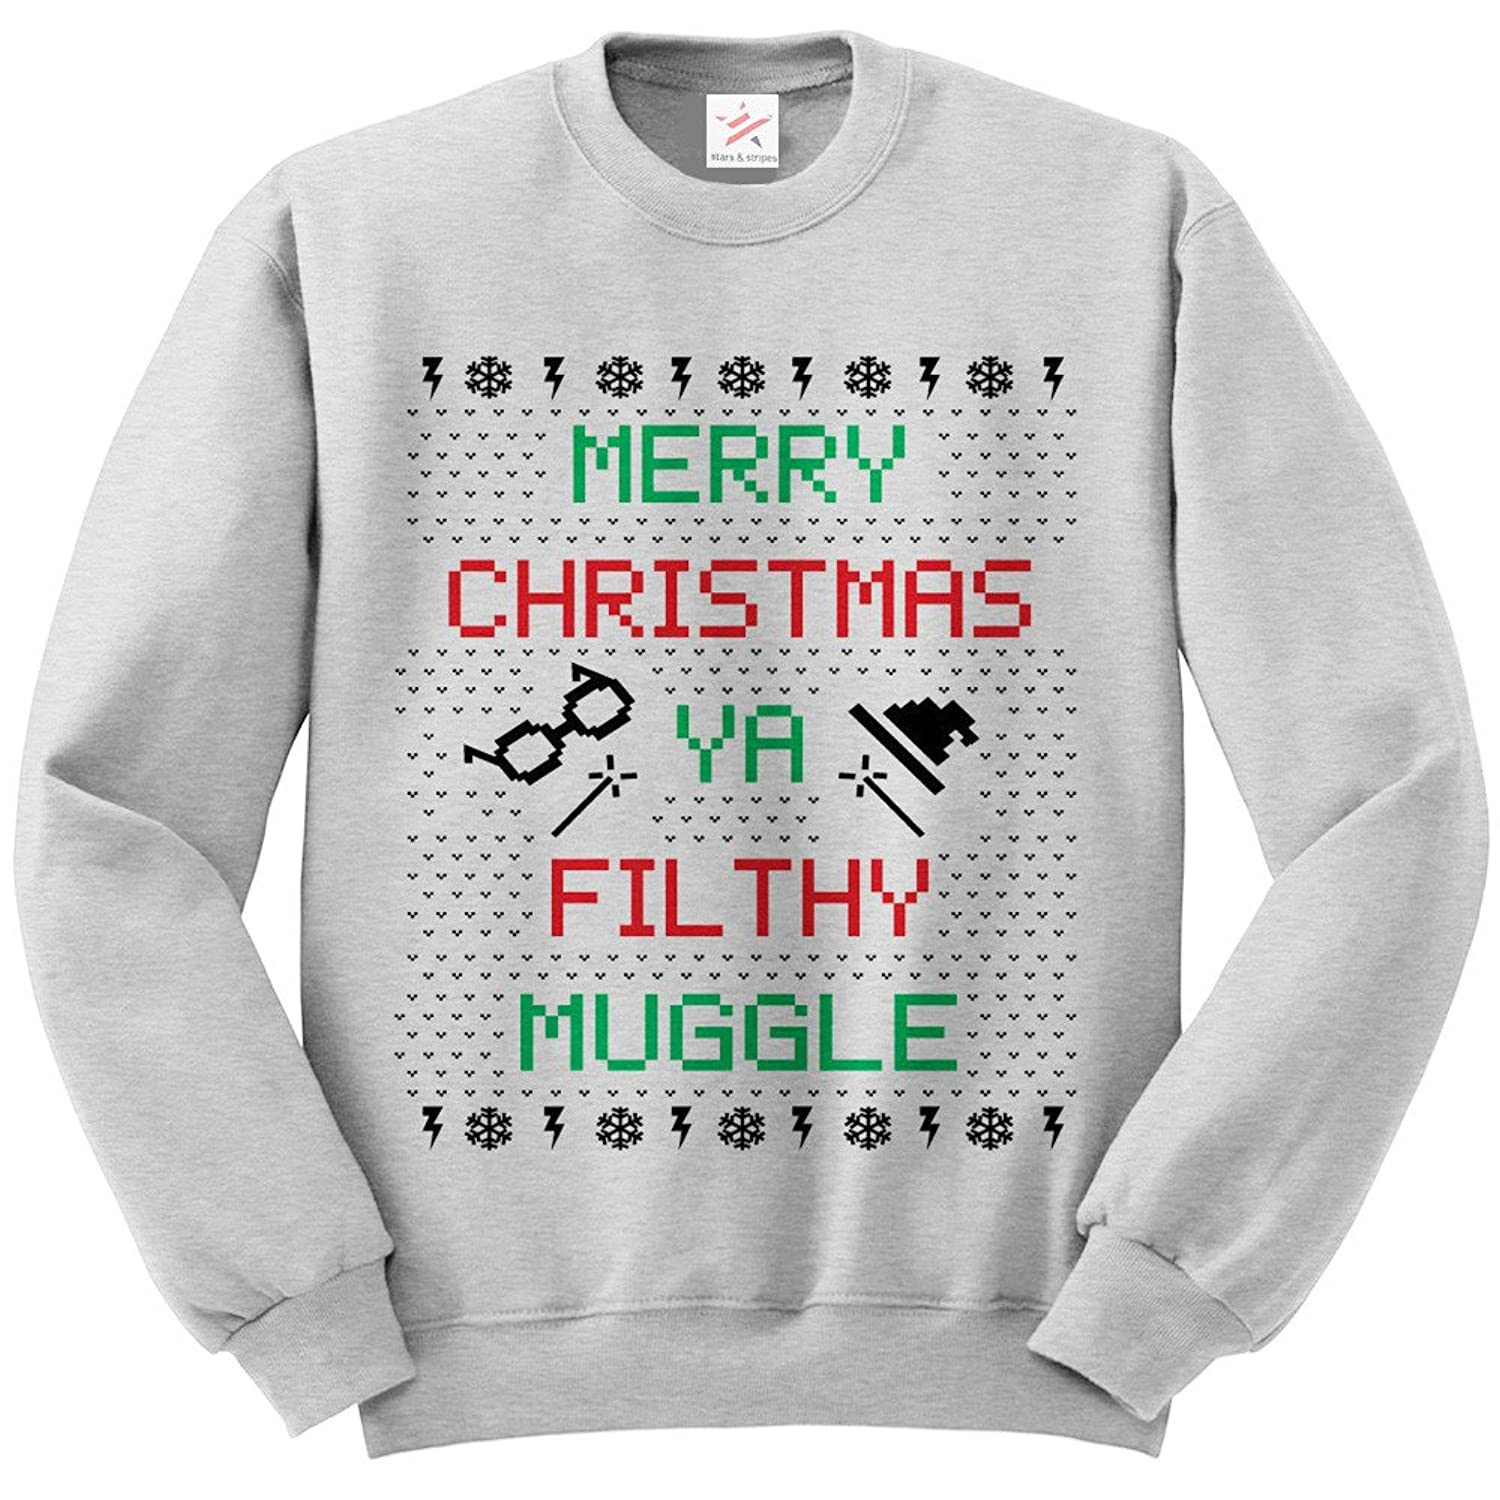 Merry Christmas Ya Filthy MUG Ugly Sweater LONG SLEEVE sweatshirt ...